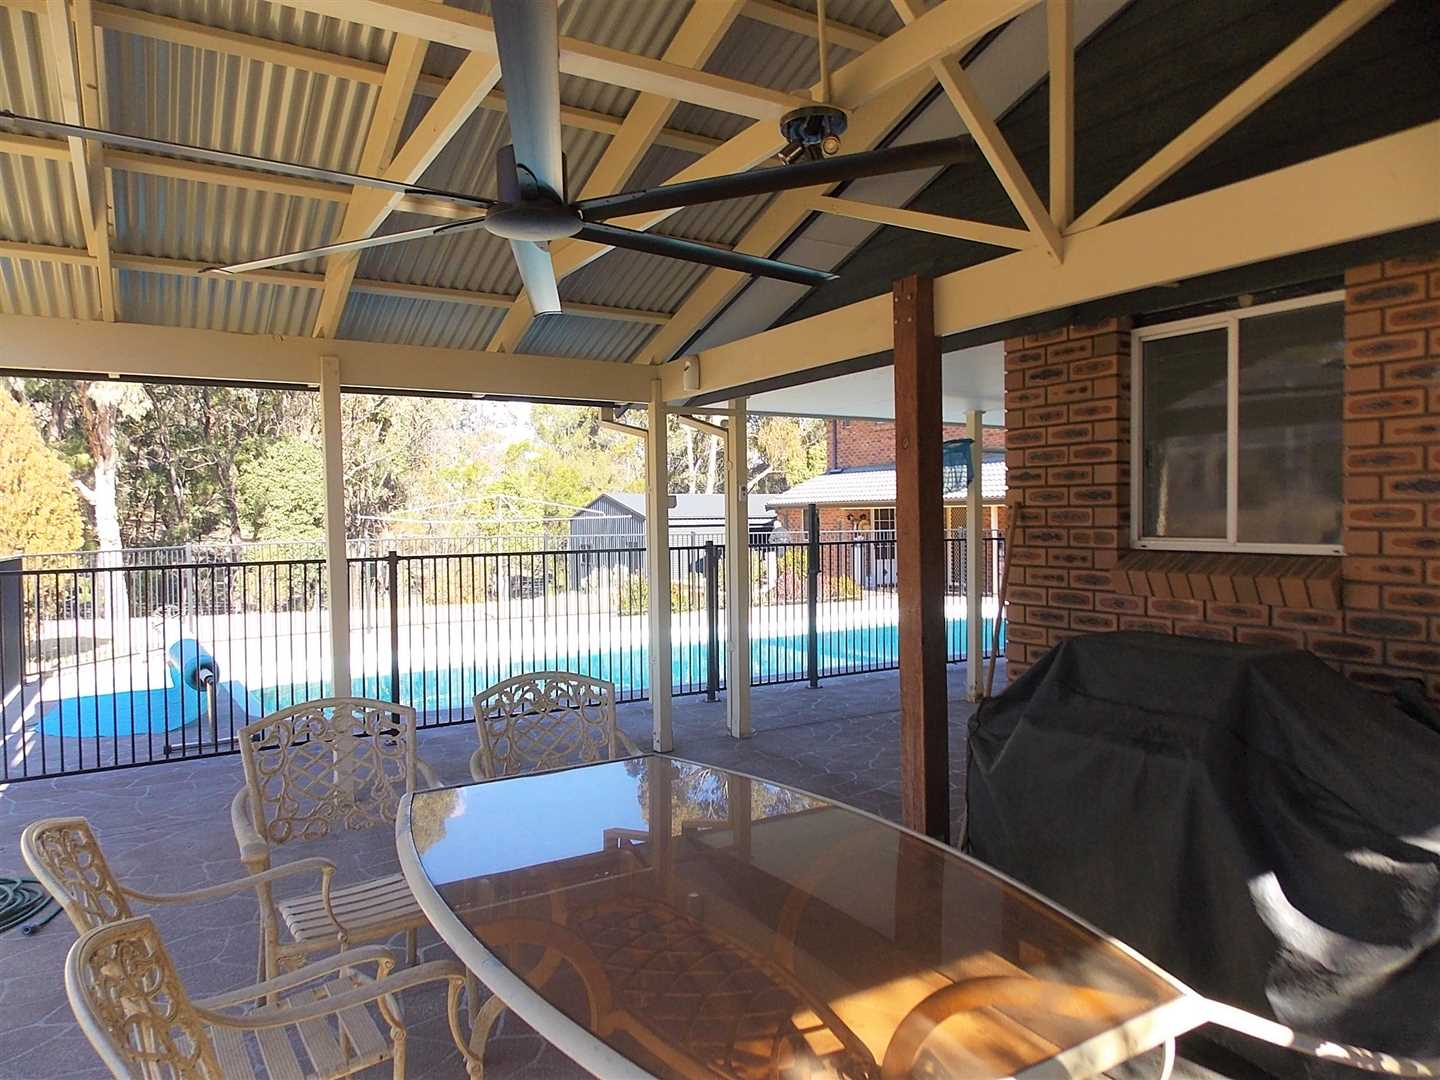 Outside dining area and pool